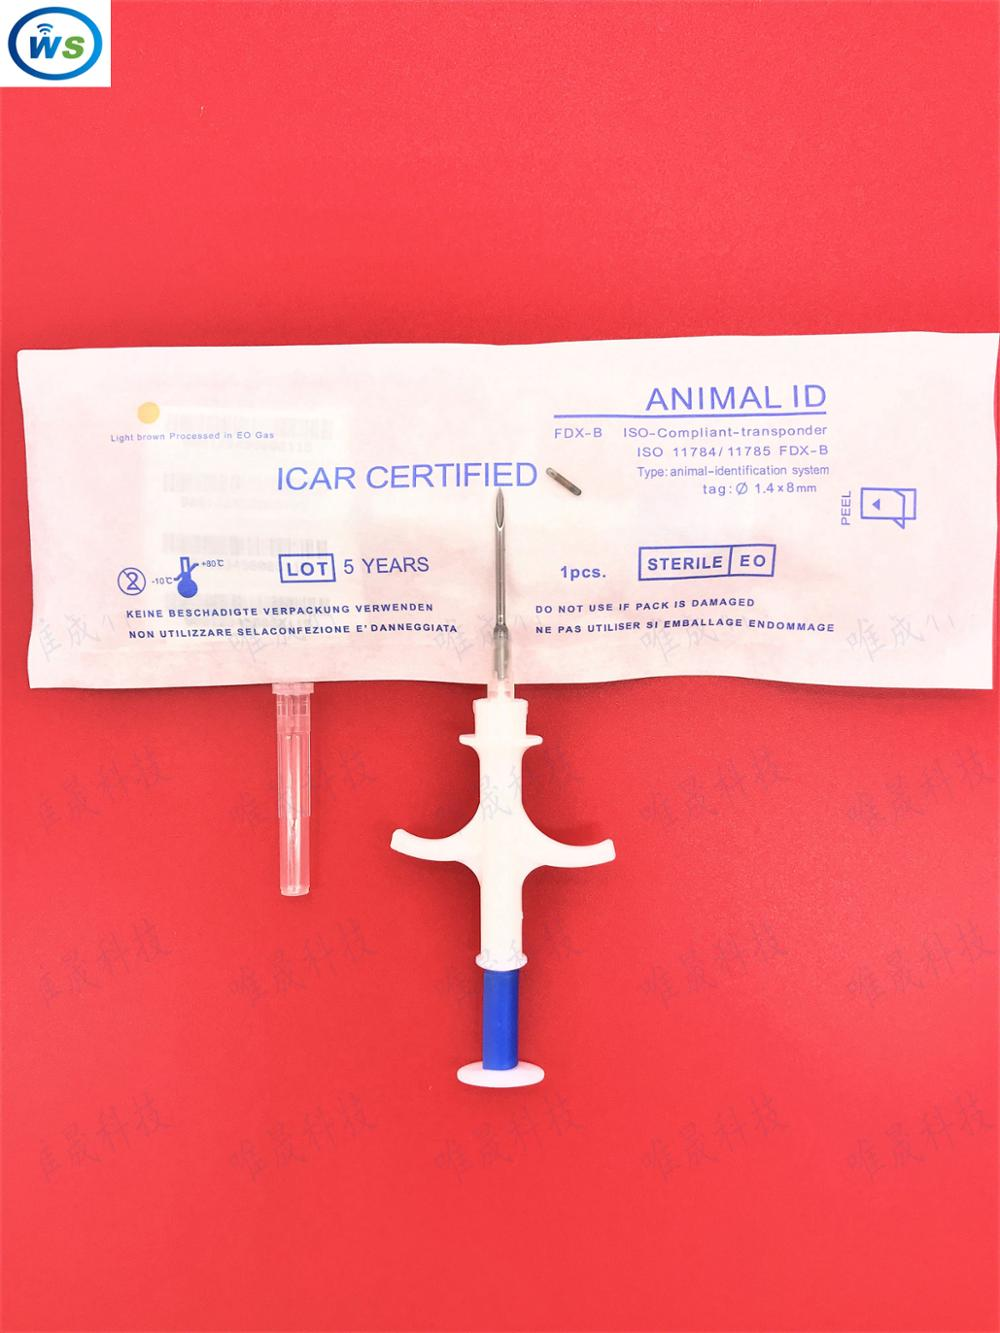 80pcs FDX-B 1.4*8mm WS Rfid Veterinary Transponder Syringe For Animals(Pig Cow Cattle  Horse Dog Fish Tortoise Dragonfish) Chip